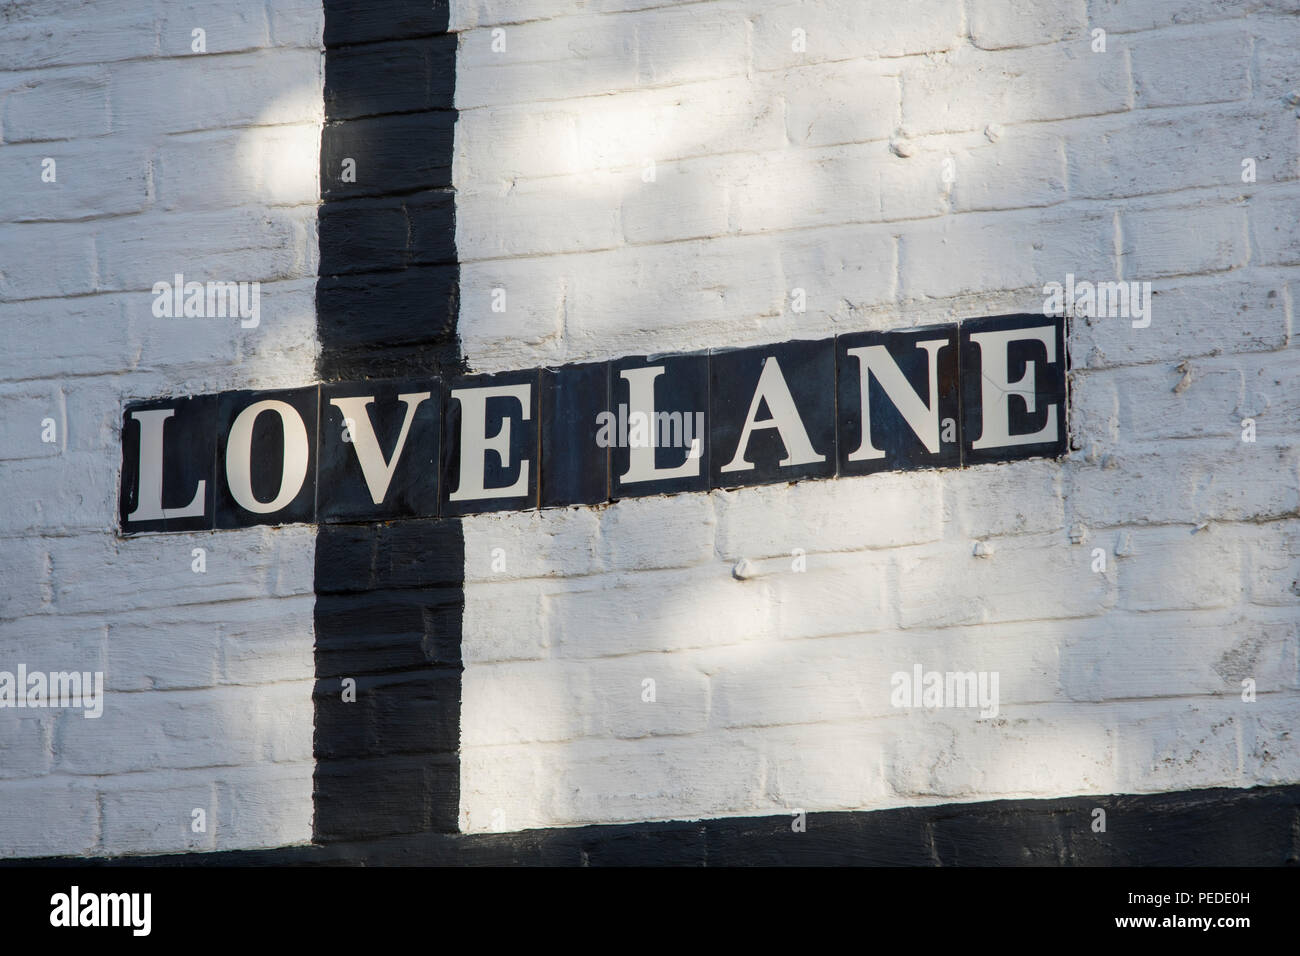 Love Land roadsign in the Cheshire village of Nantwich, Cheshire. - Stock Image